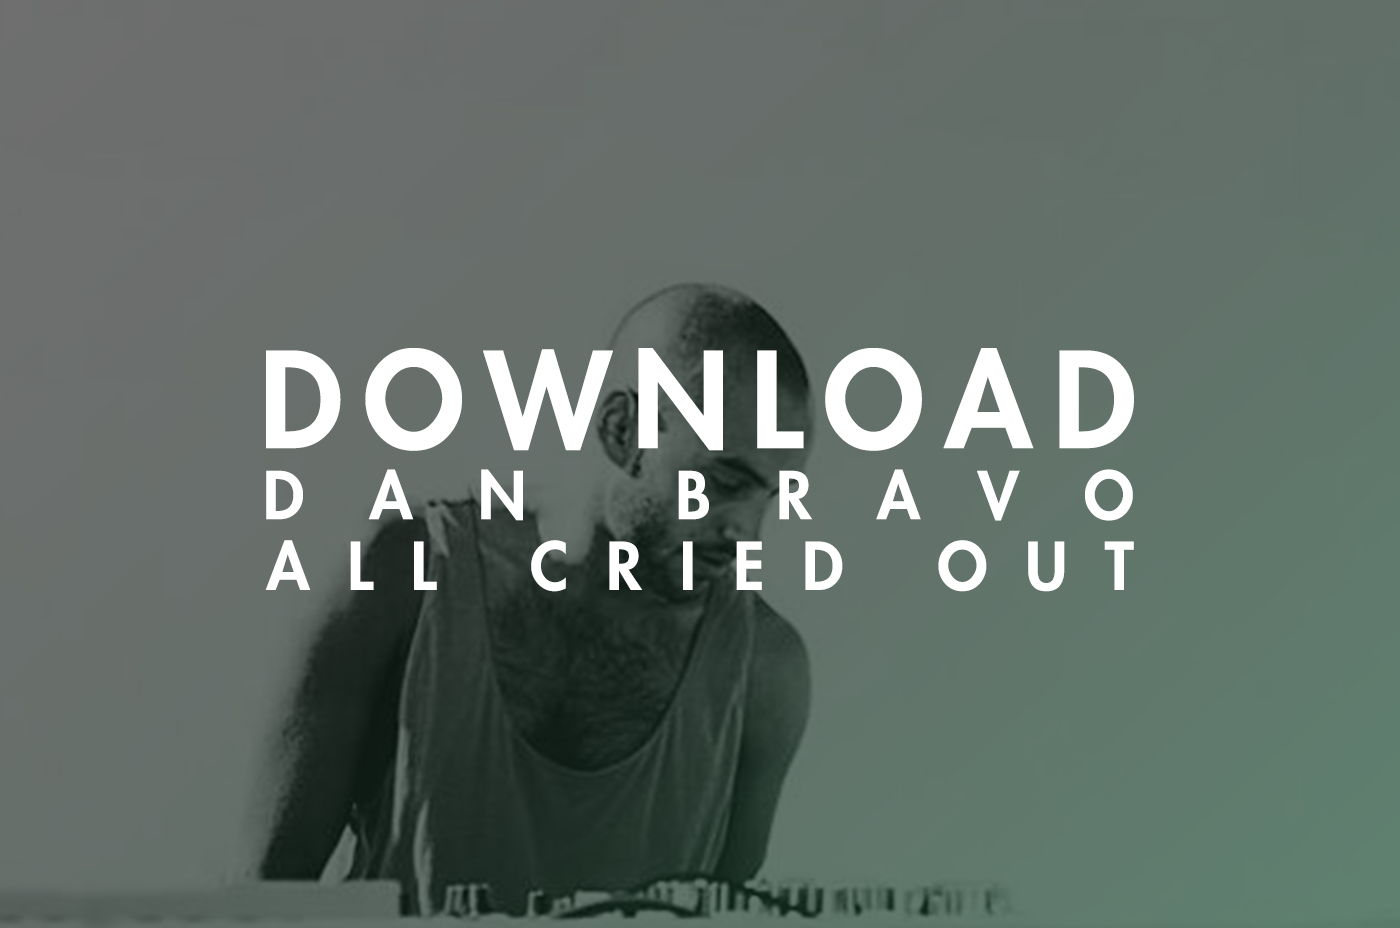 dan bravo, free, download, all cried out, deep house, soundspace